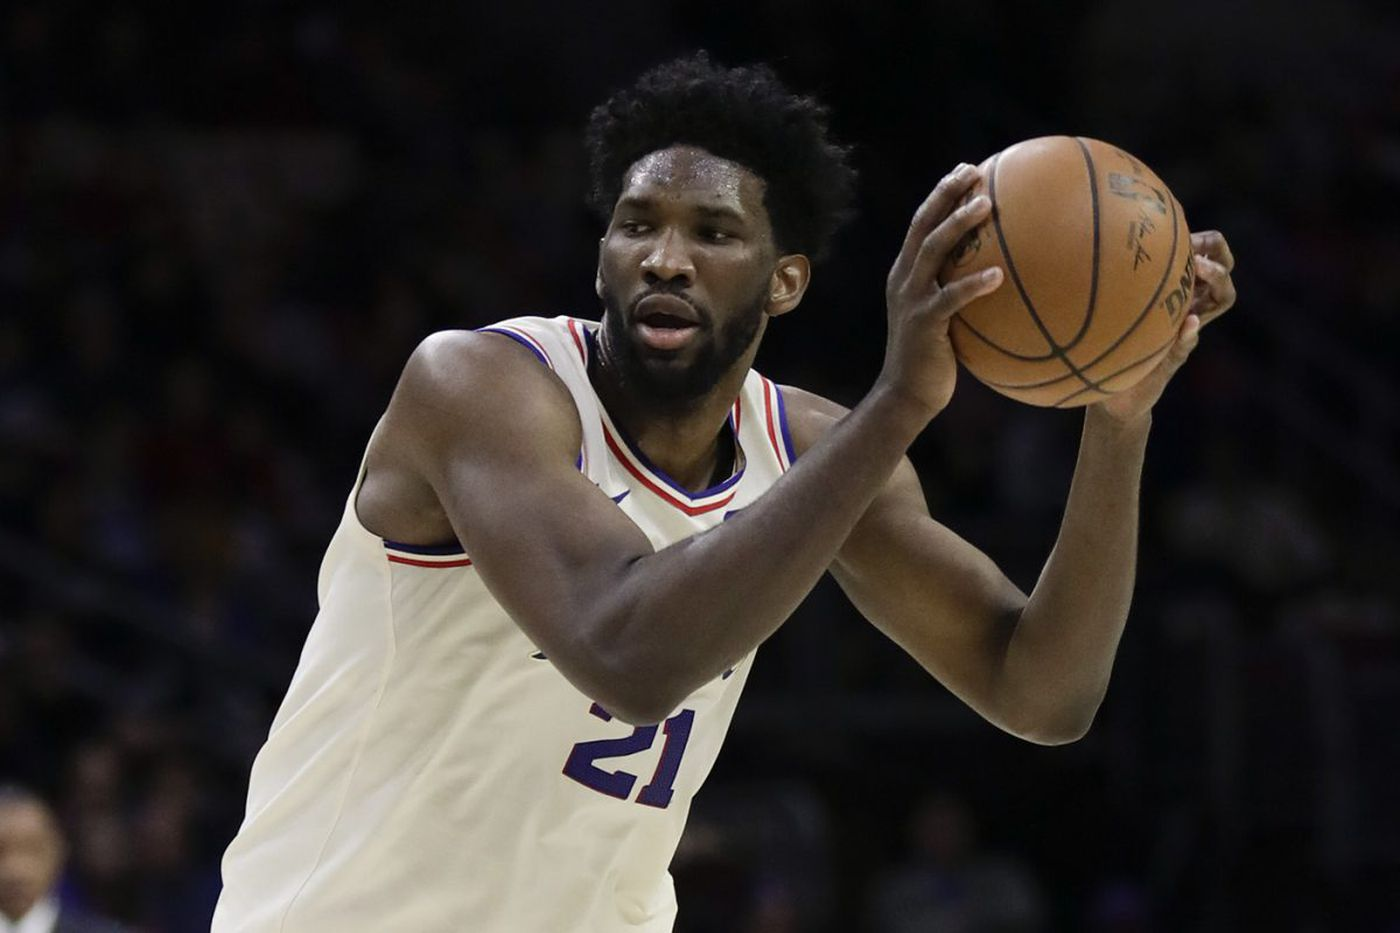 Sixers' Joel Embiid: 'We want home-court advantage' in first round